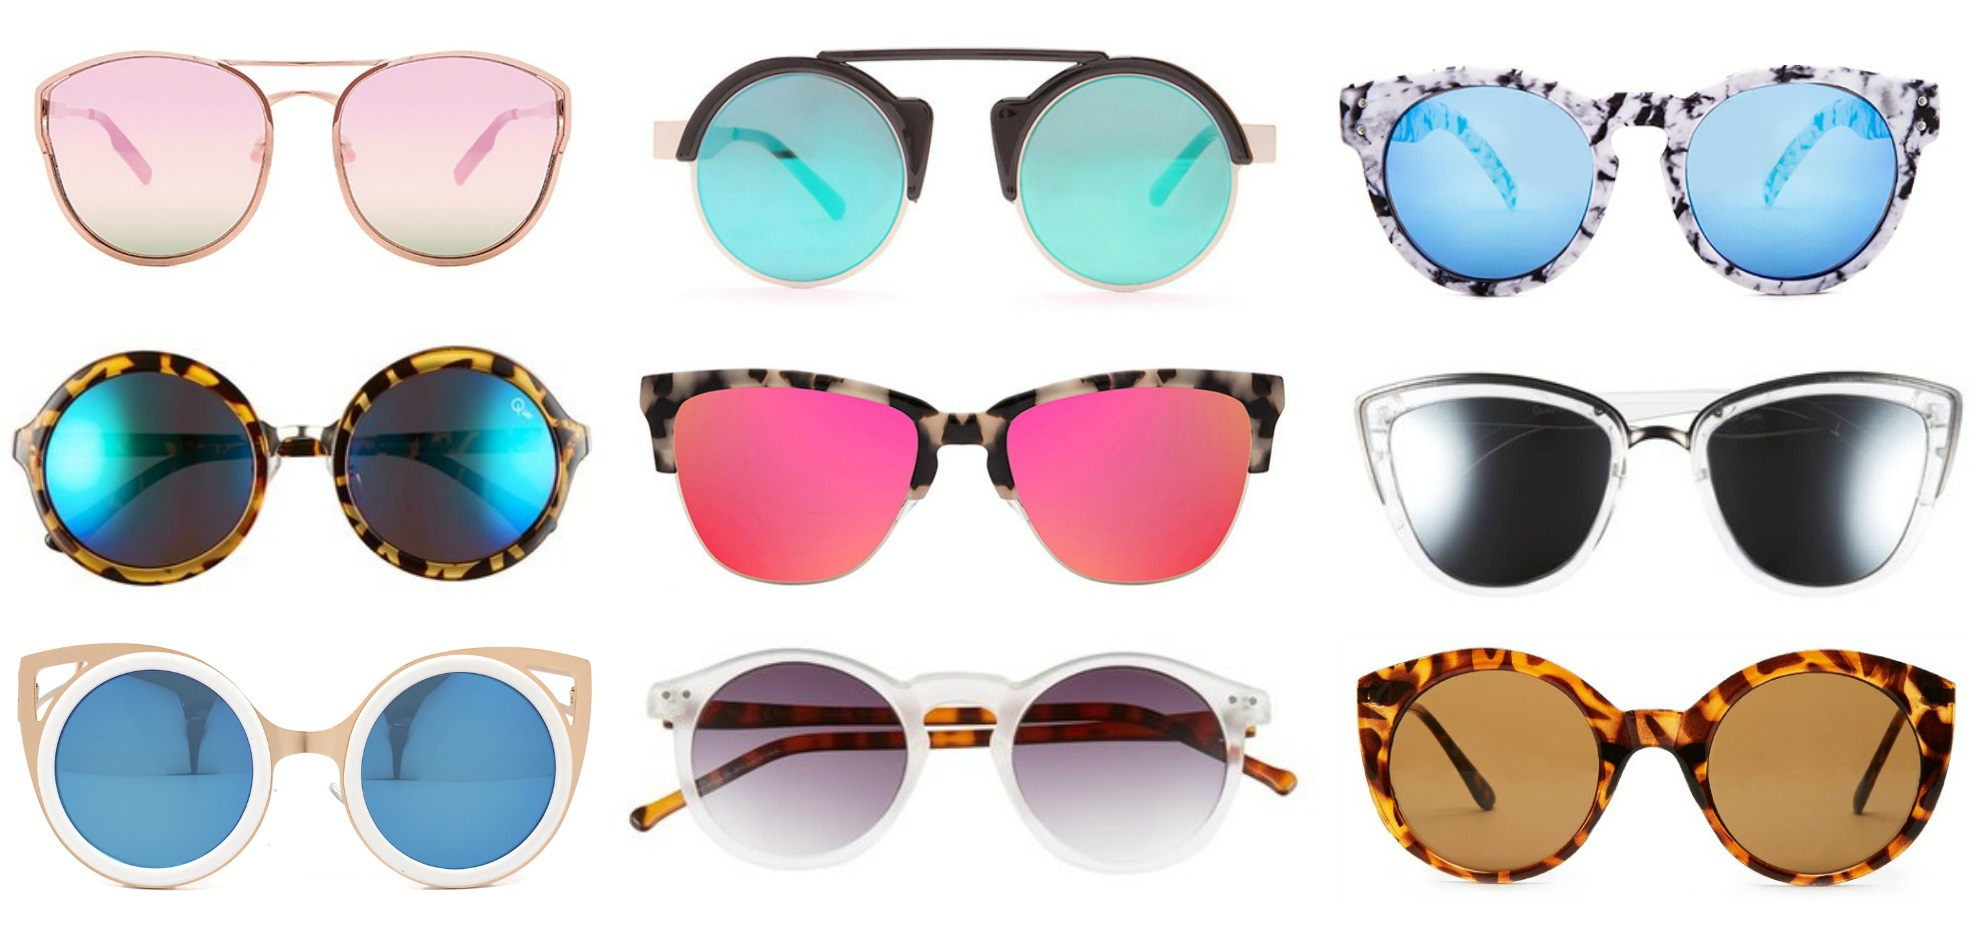 Sunglass Collage.jpg